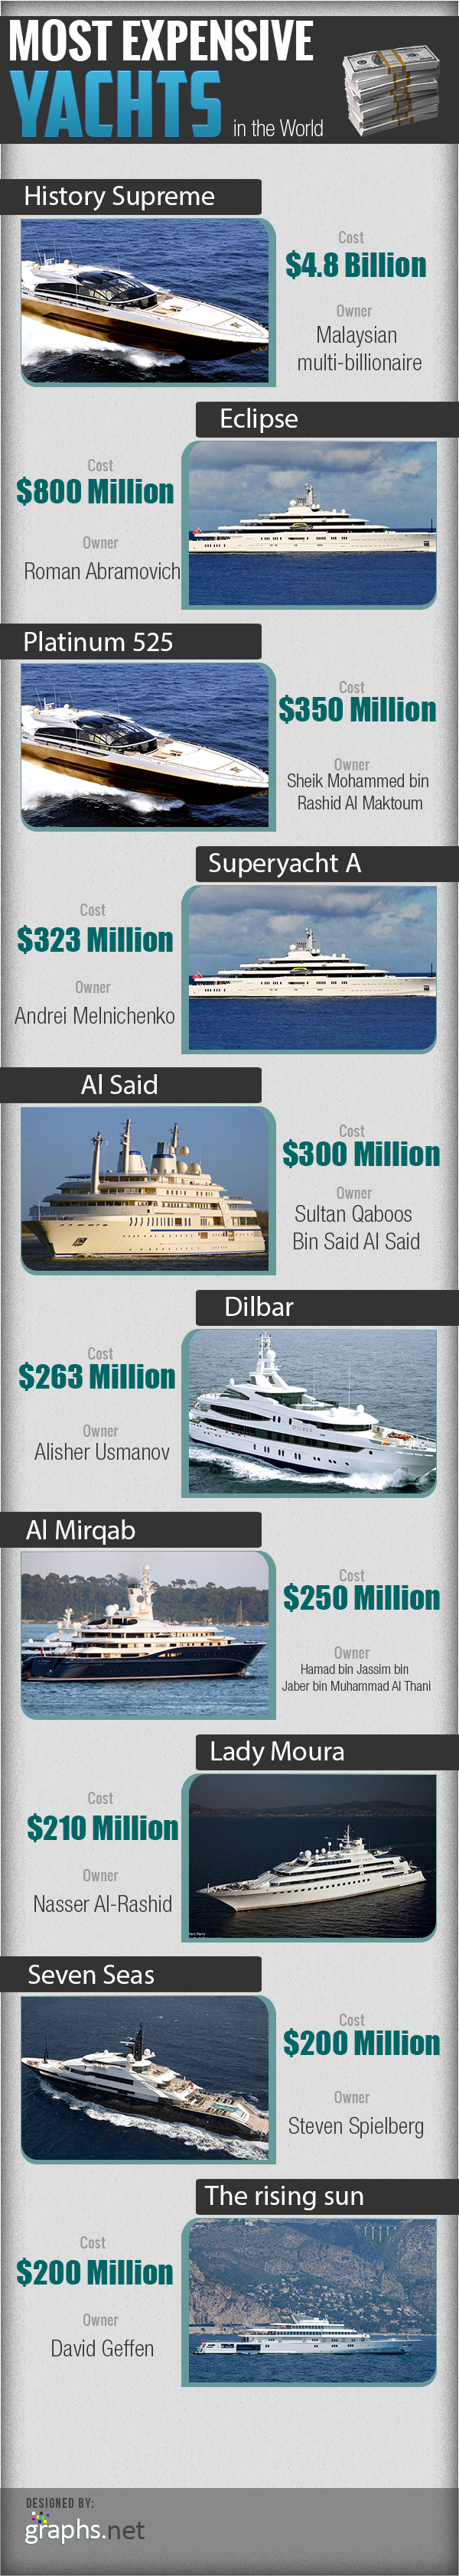 Most-Expensive-Yachts-in-the-World